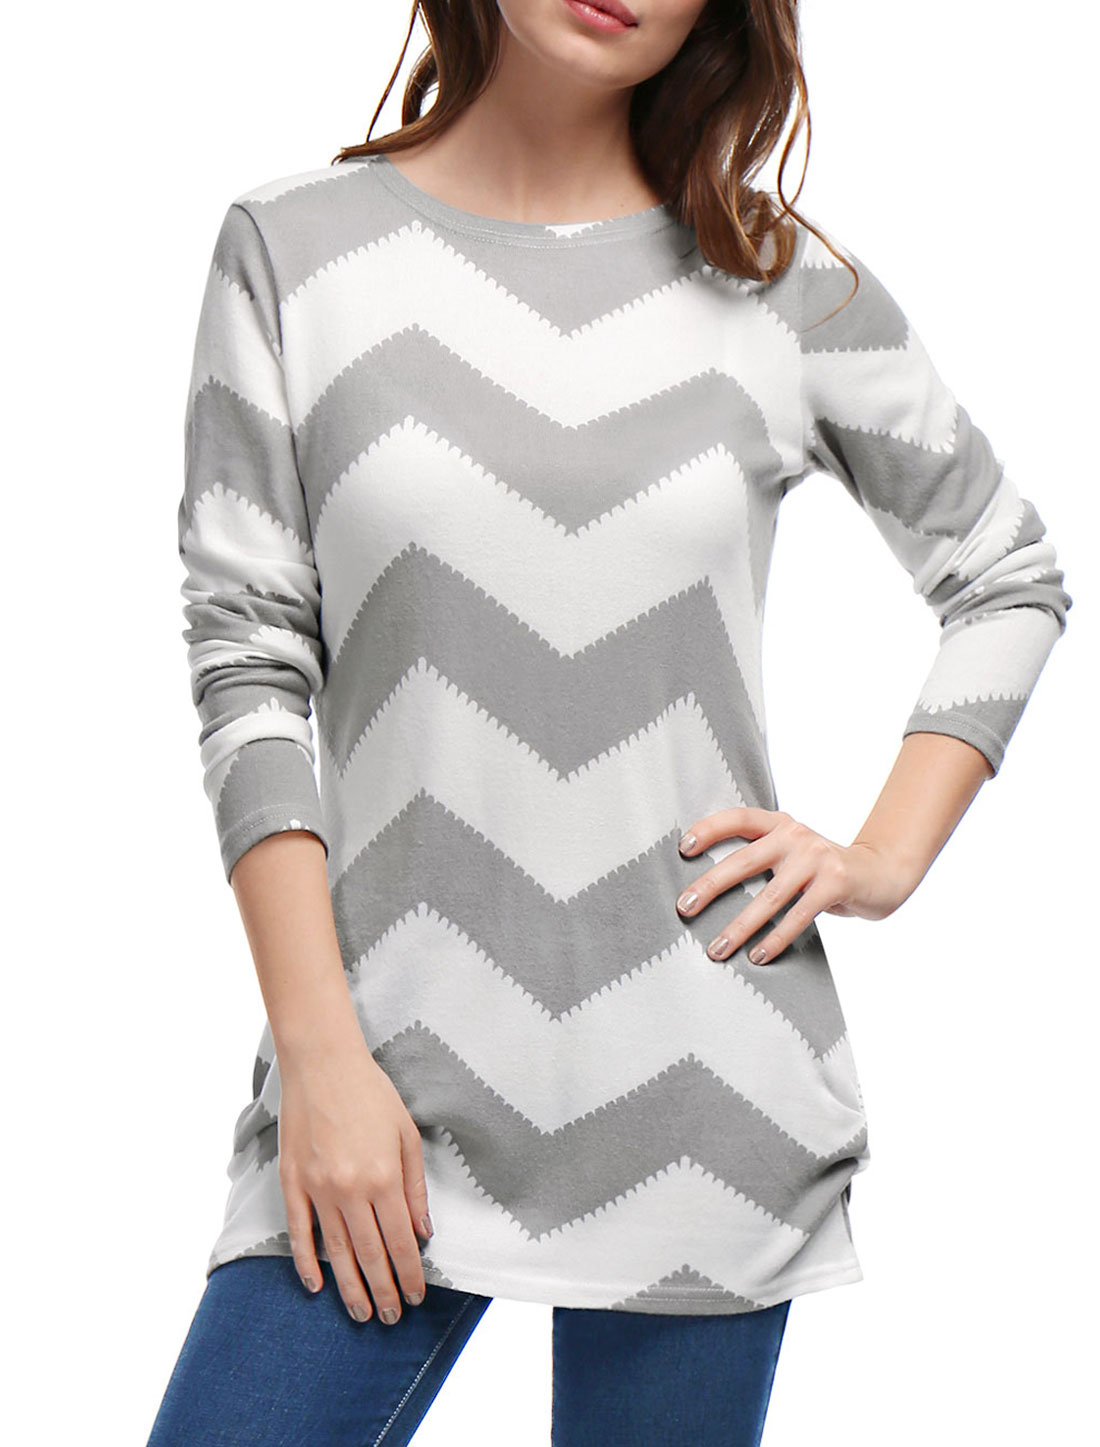 Woman Zig-Zag Pattern Knitted Relax Fit Tunic Top Gray White L